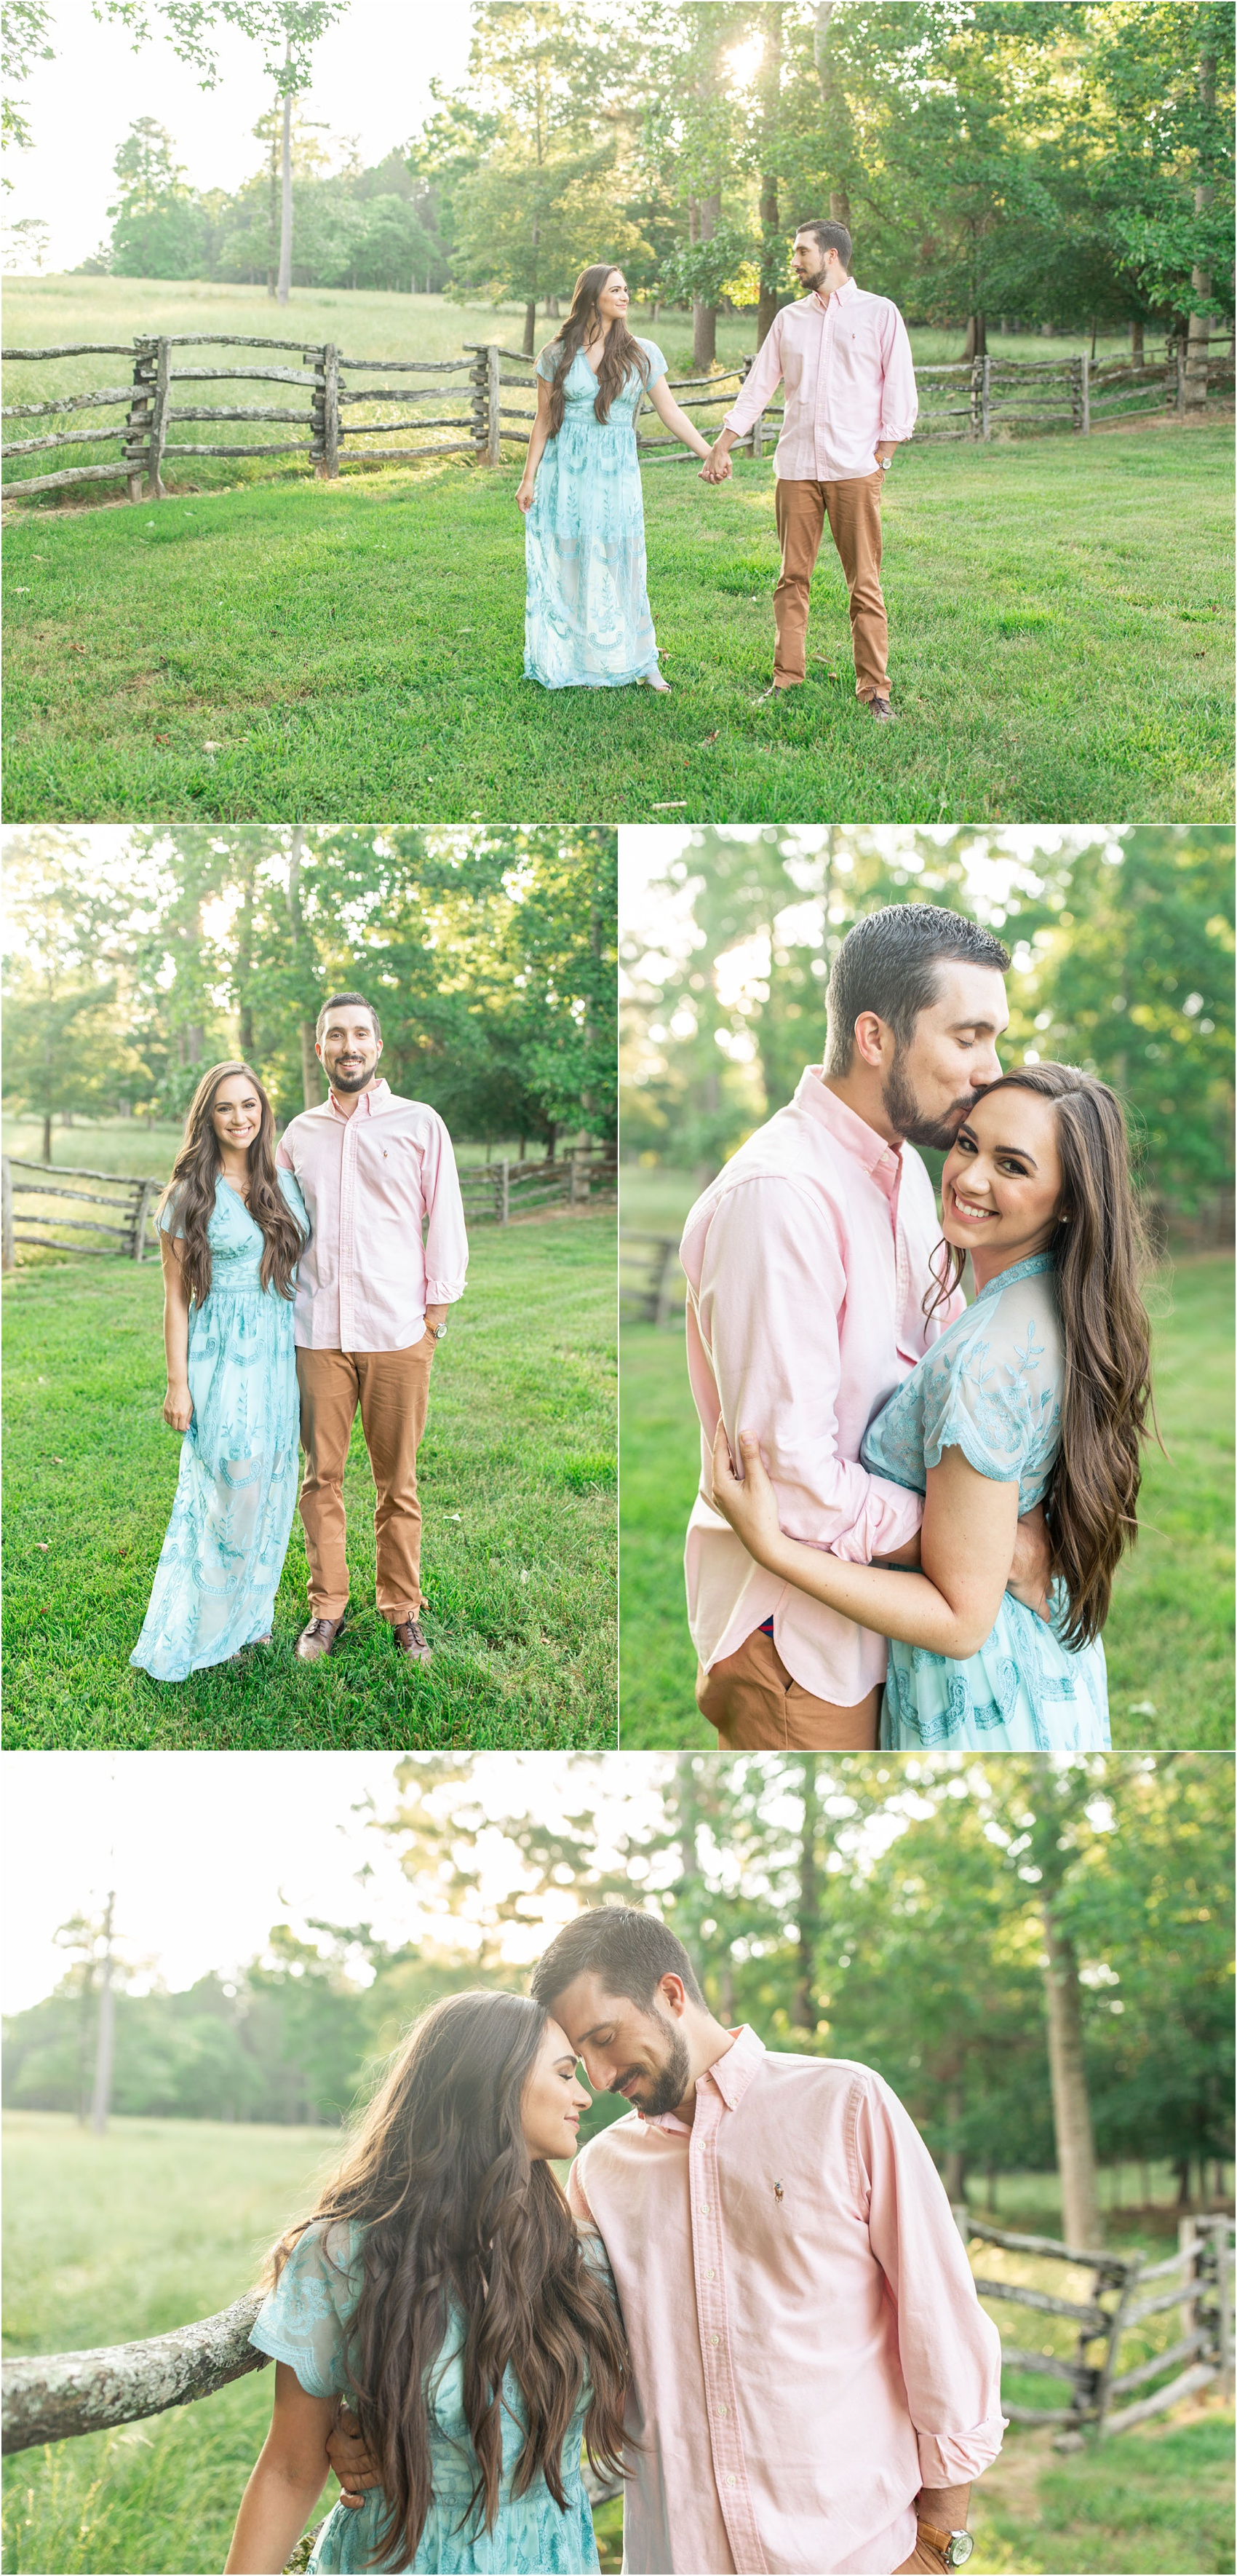 Savannah Eve Photography LLC- Tiffani & Josh Beck @ The Walters Barn- Blog-2.jpg